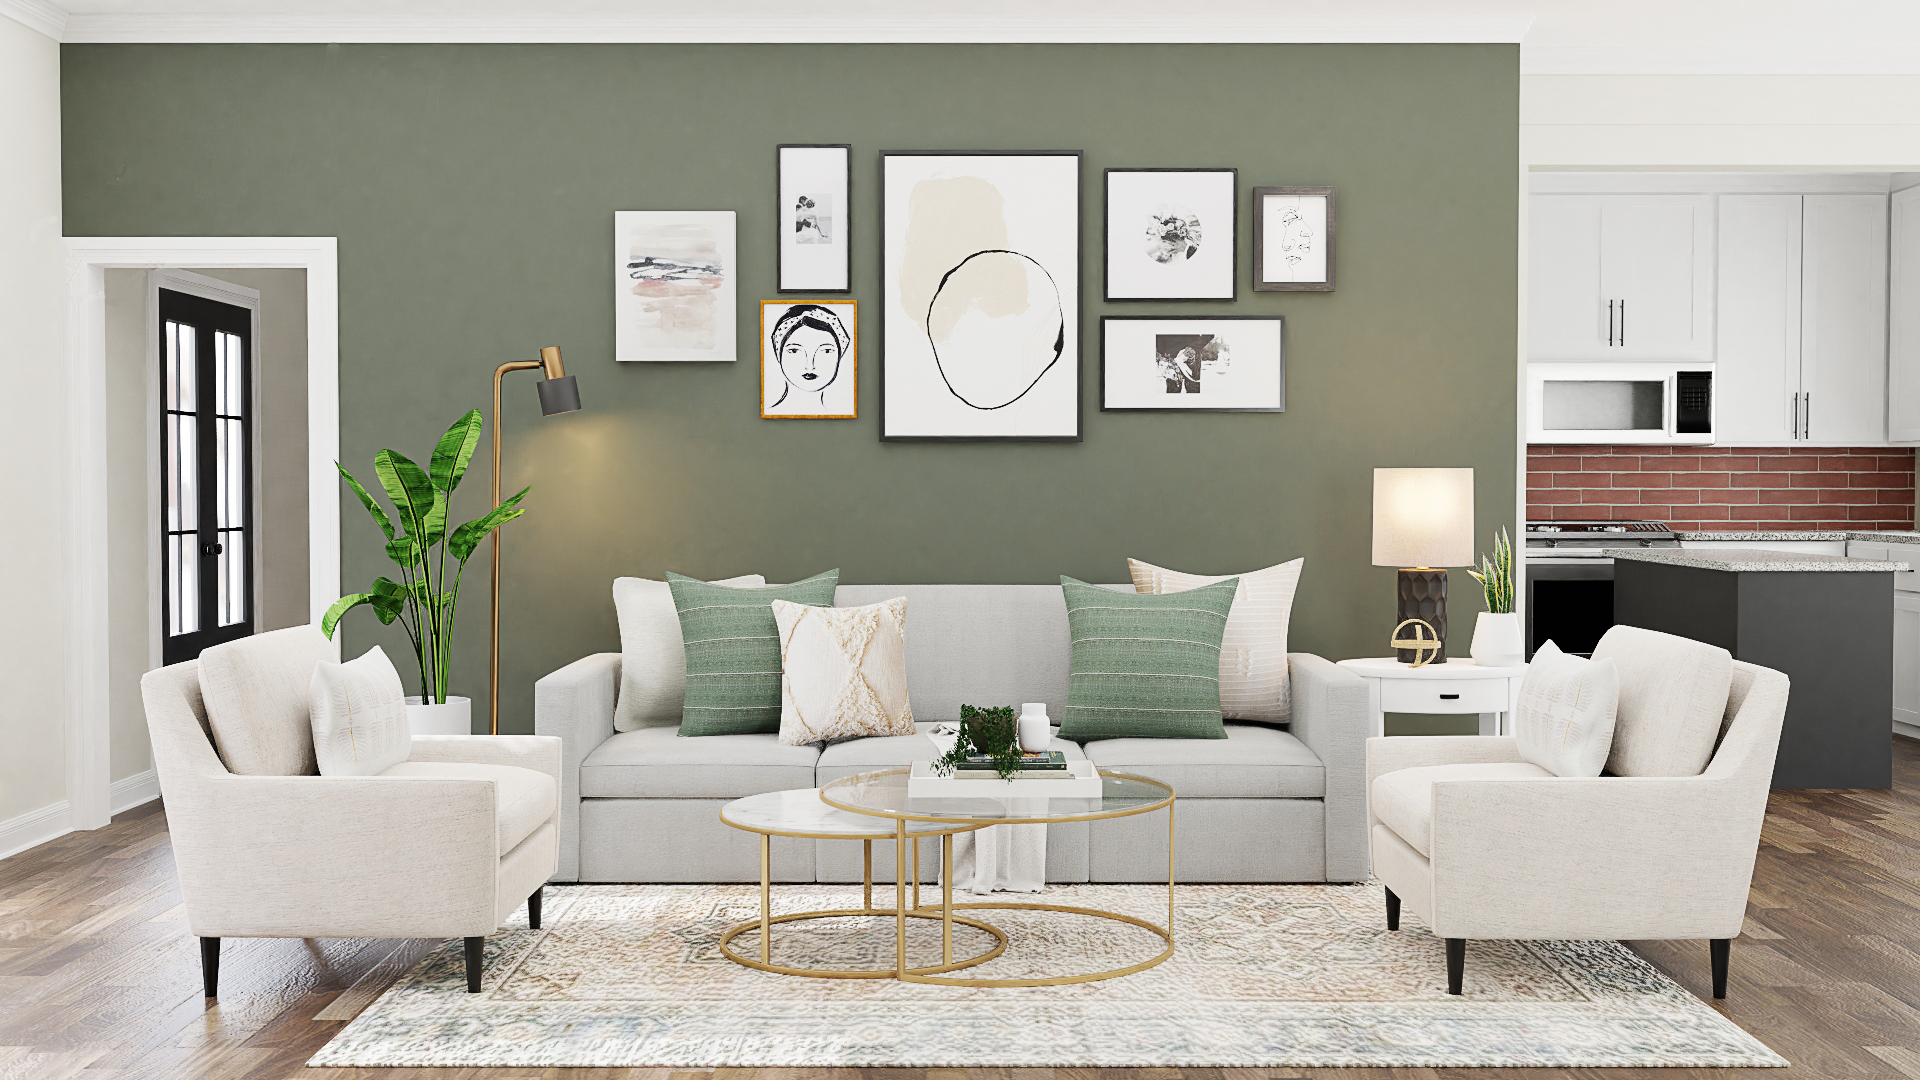 Best Popular Living Room Paint Colors Of 2021 You Should Know Spacejoy